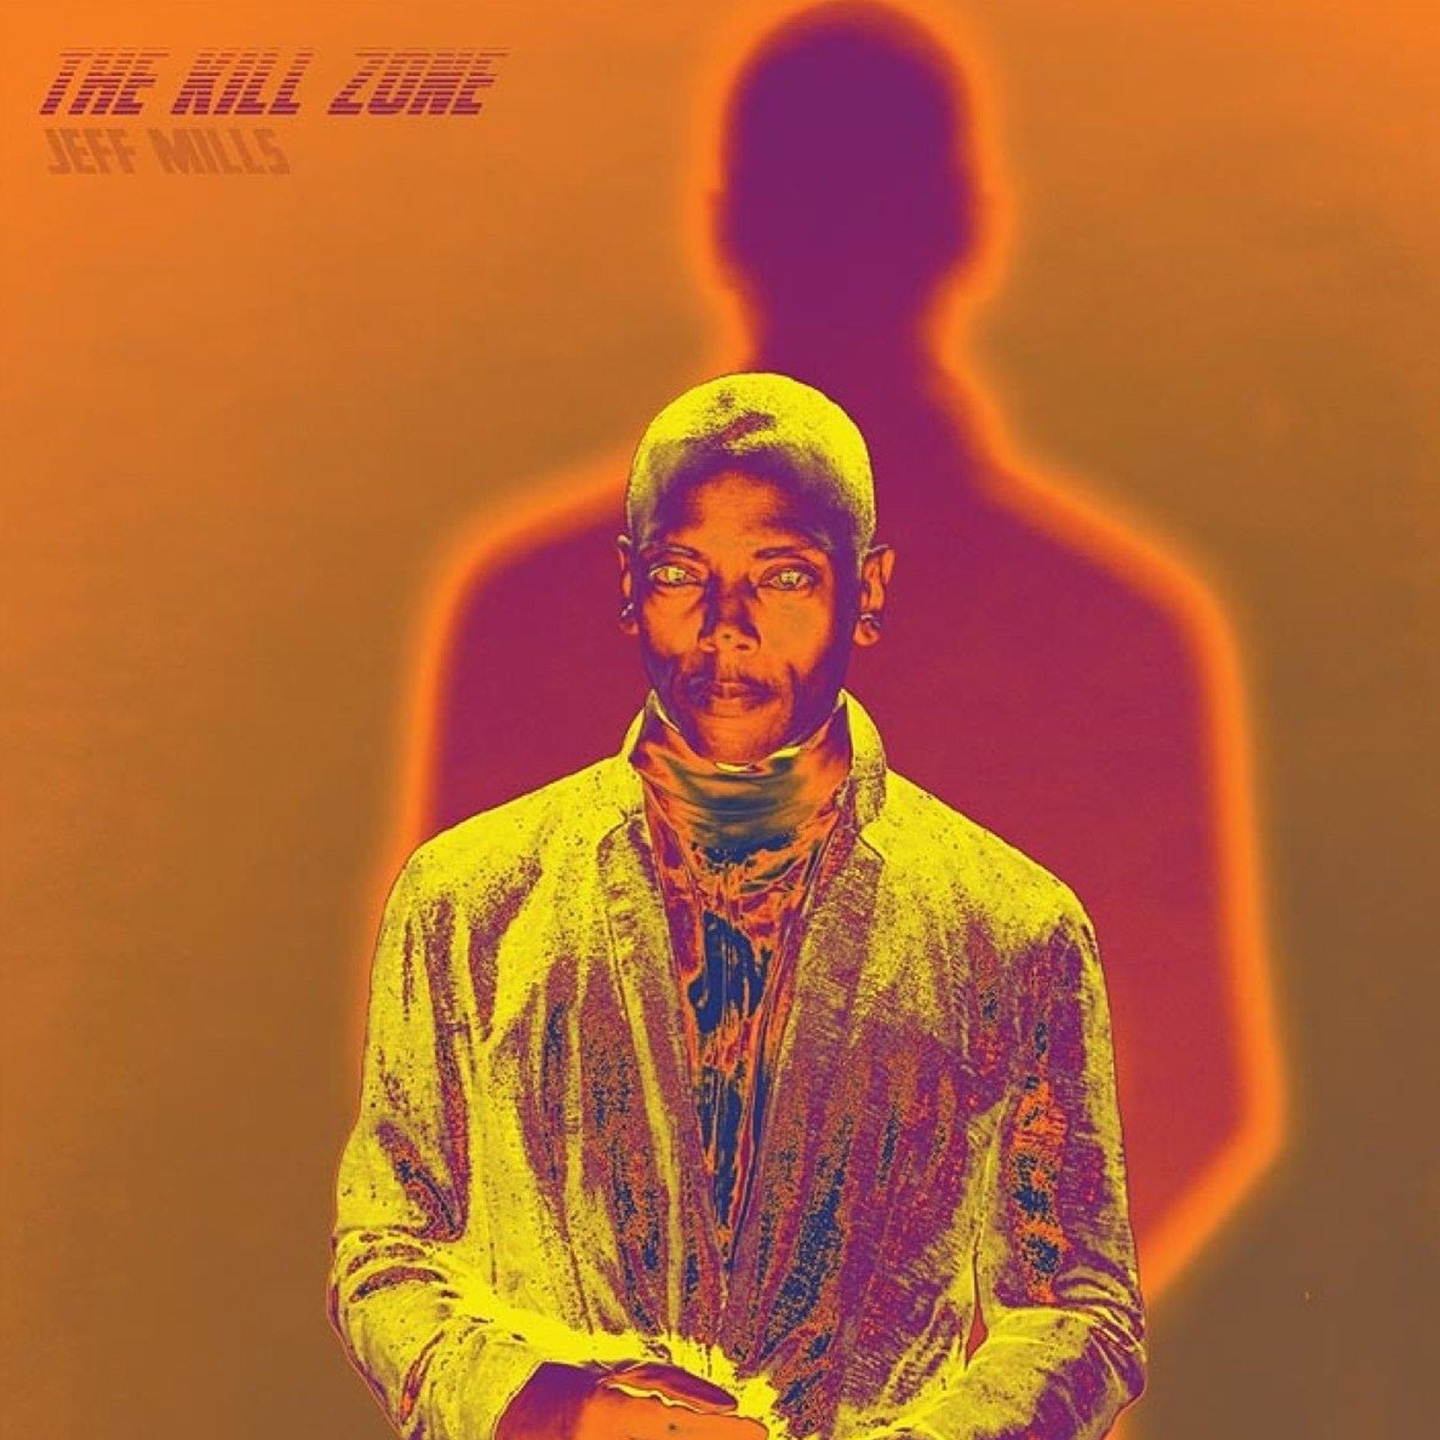 Jeff Mills - The Kill Zone